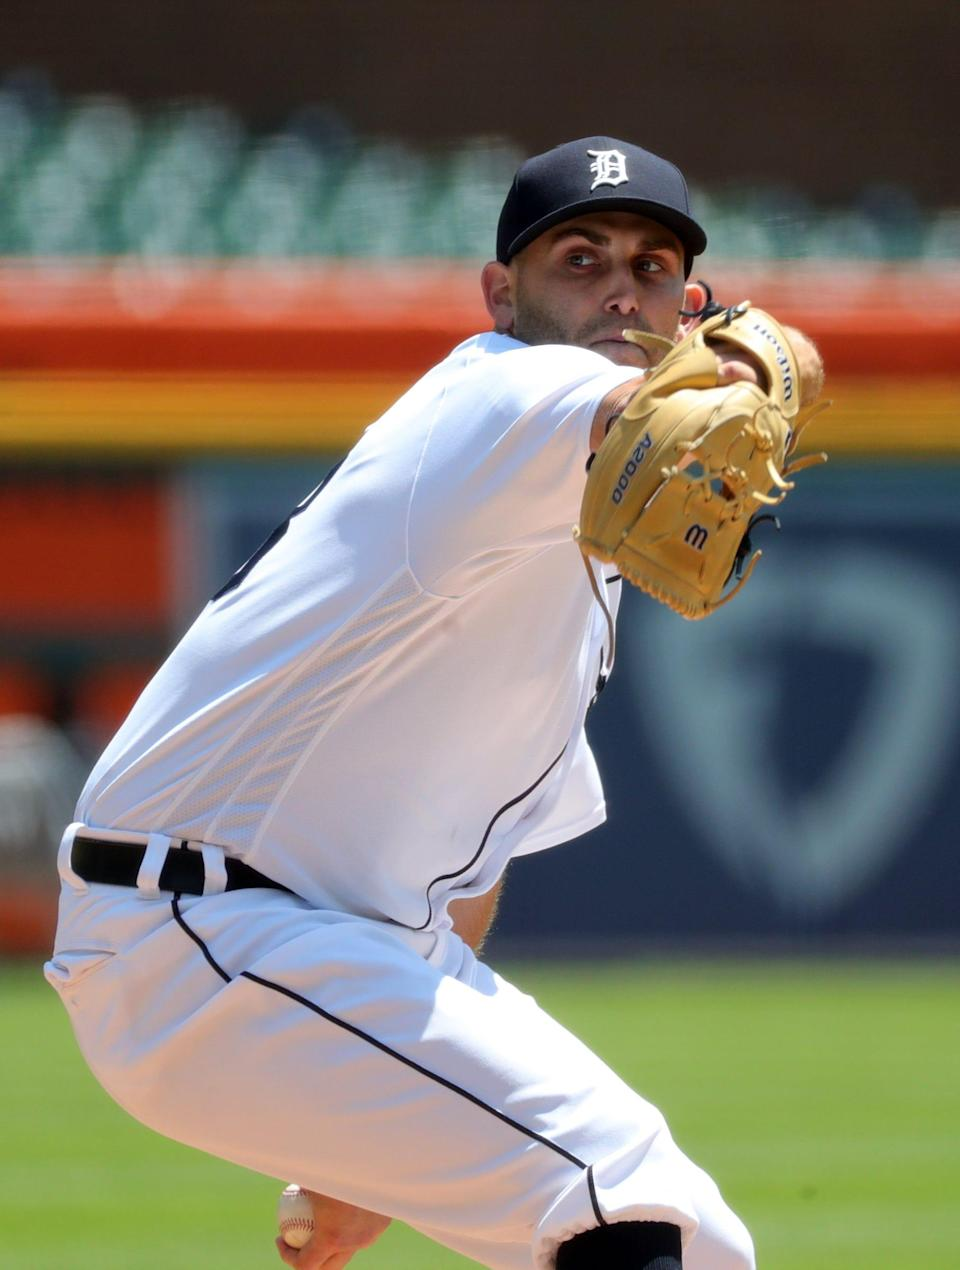 Tigers pitcher Matthew Boyd throws against Cleveland during the third inning on Thursday, May 27, 2021, at Comerica Park.